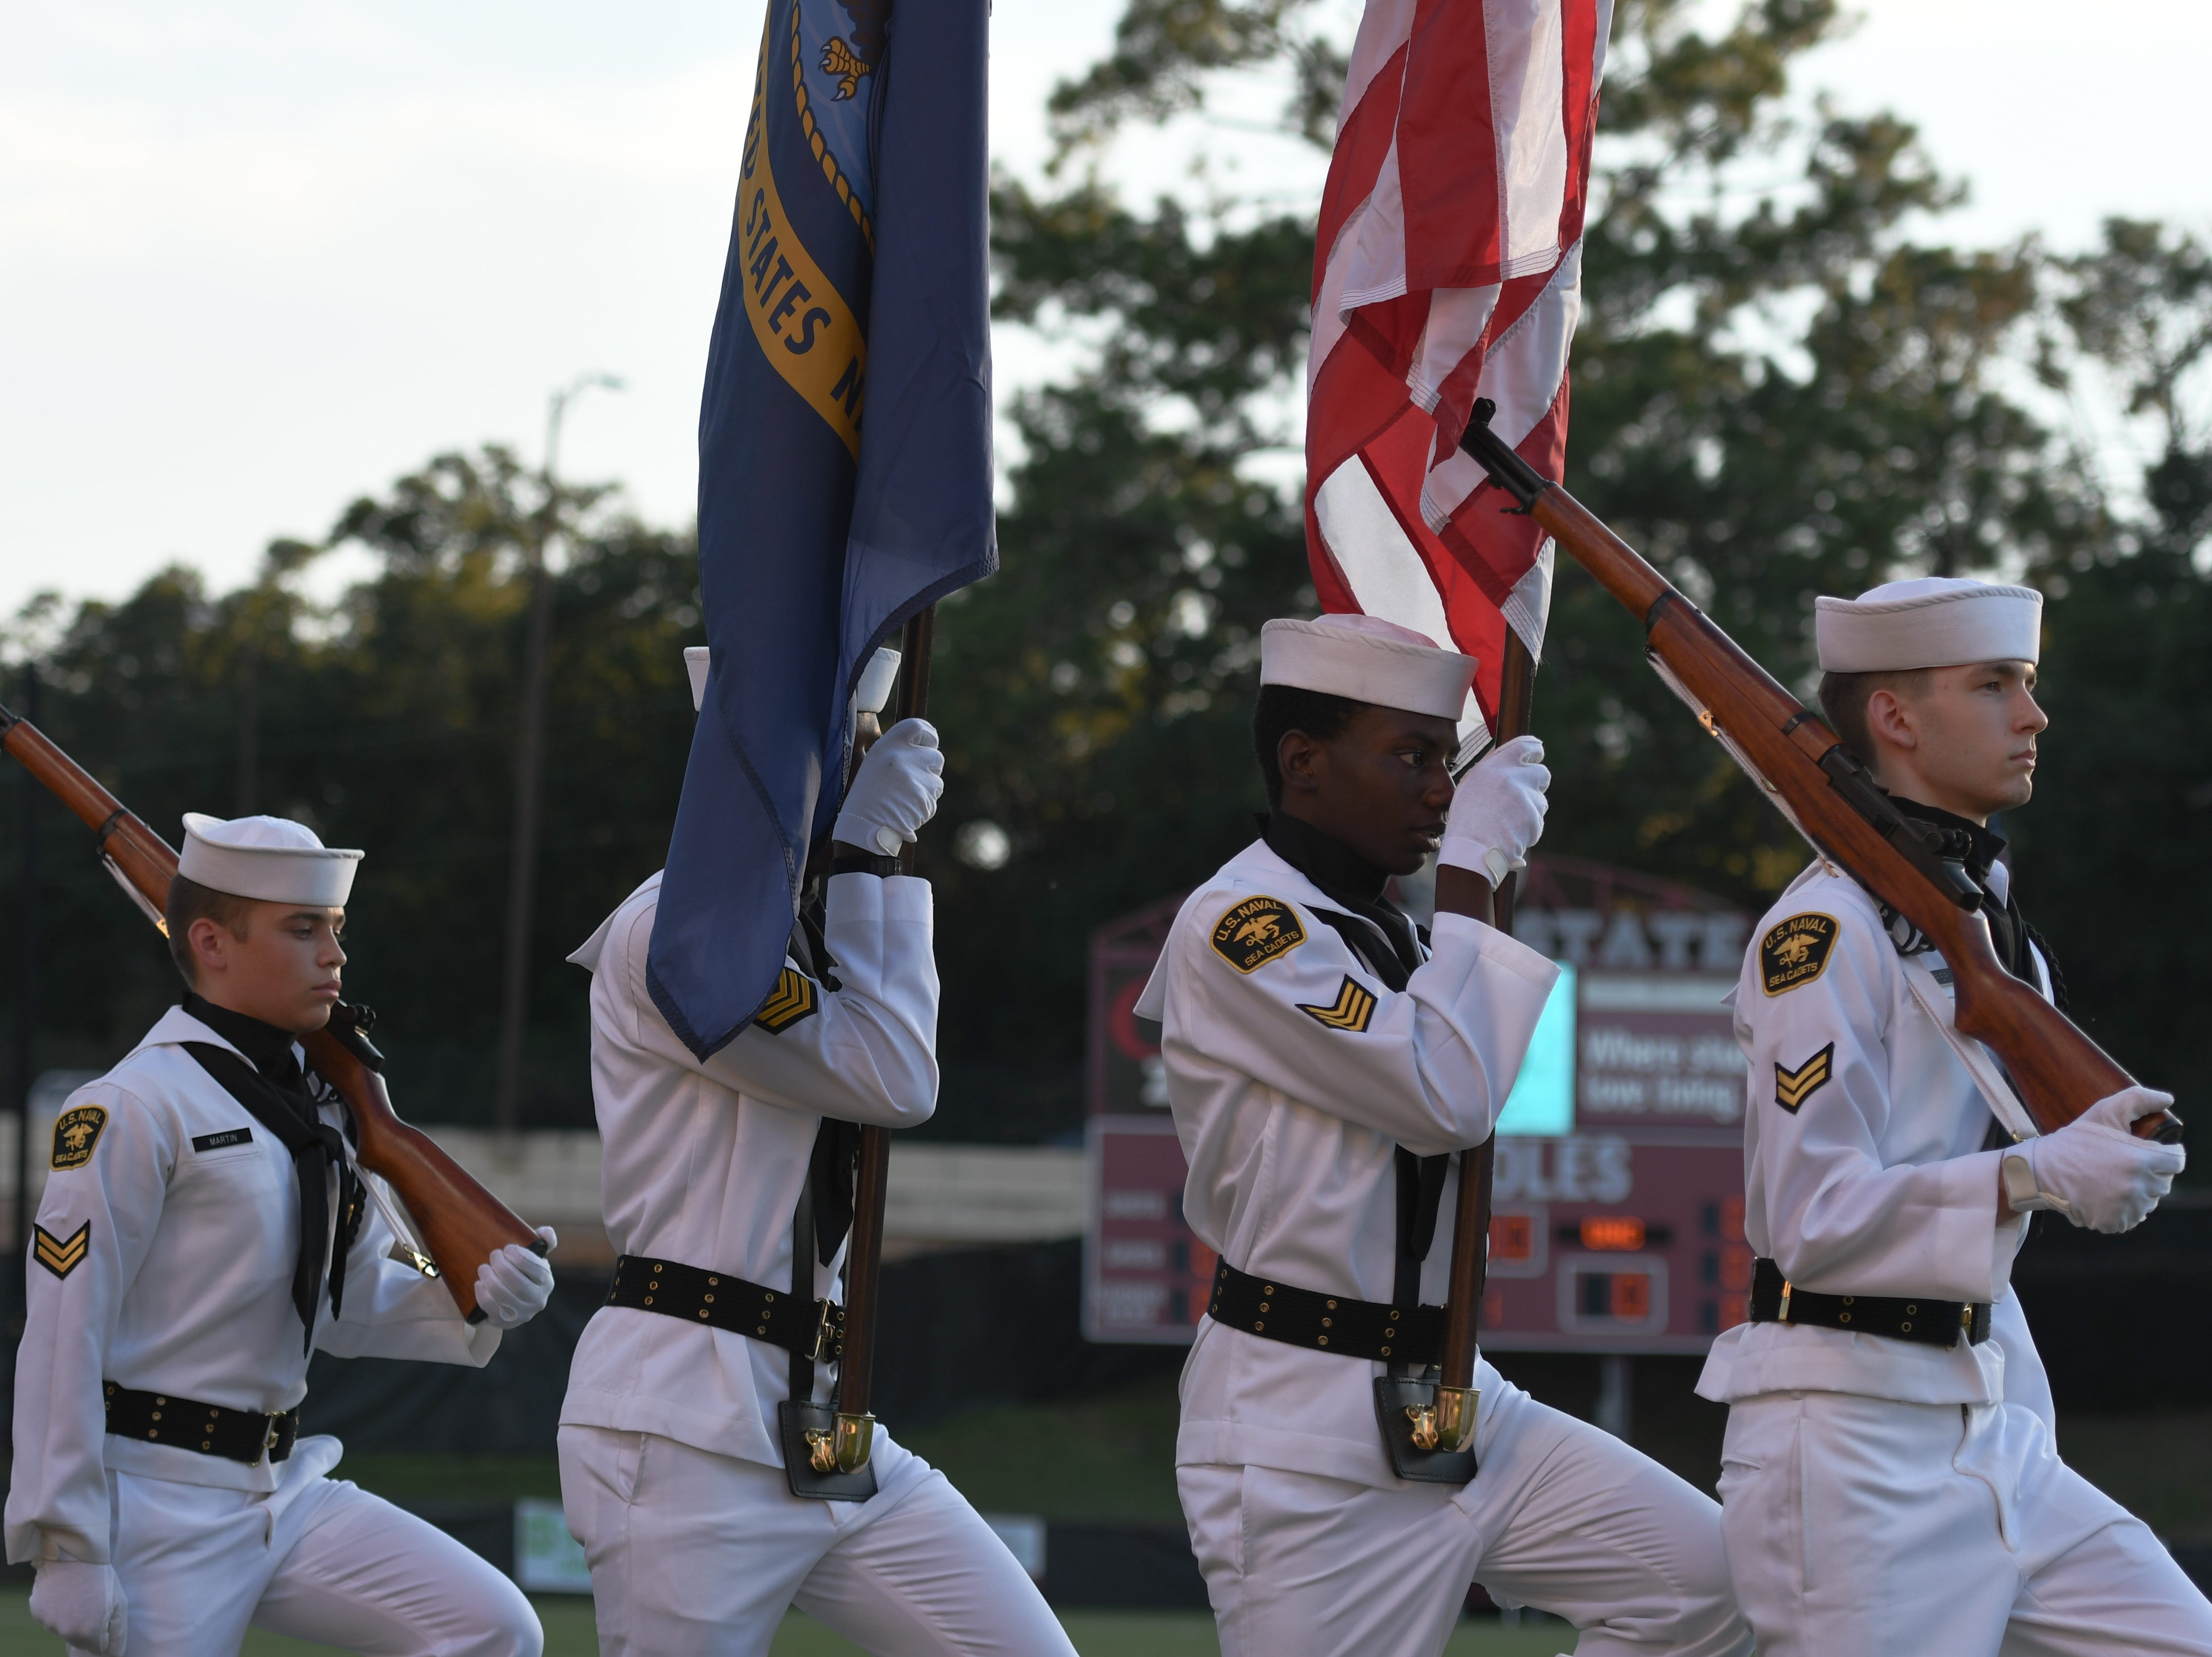 The FSU color guard represented the American flag before FSU's game against UNC on September 14th at the Seminole Soccer Complex.